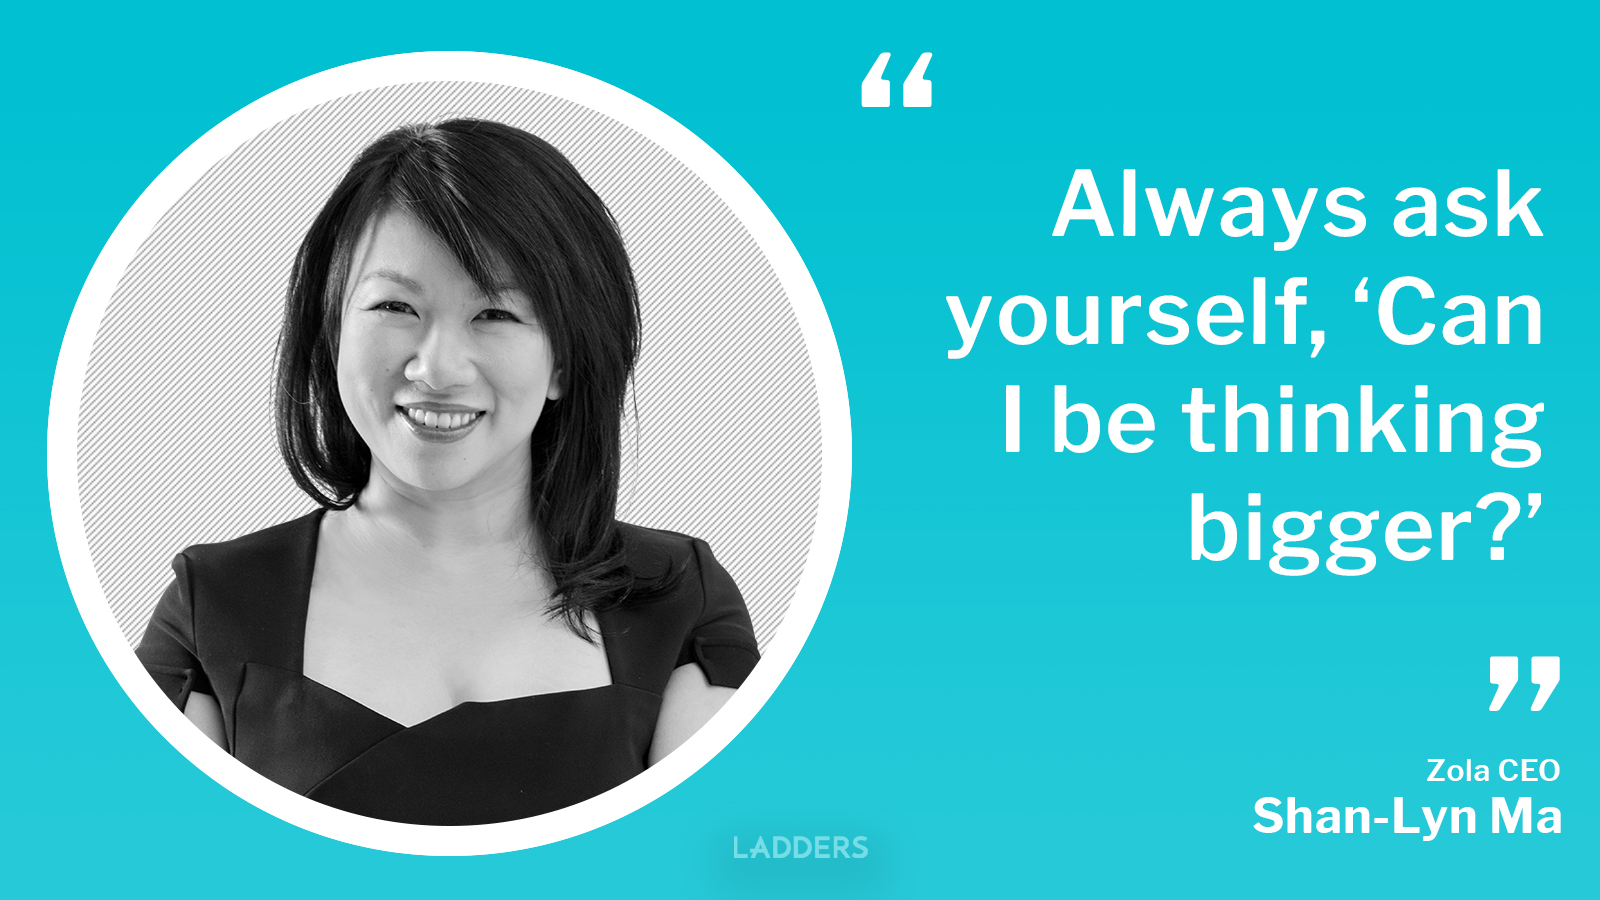 Zola CEO Shan-Lyn Ma on her biggest career risk and the latest trend in the wedding industry